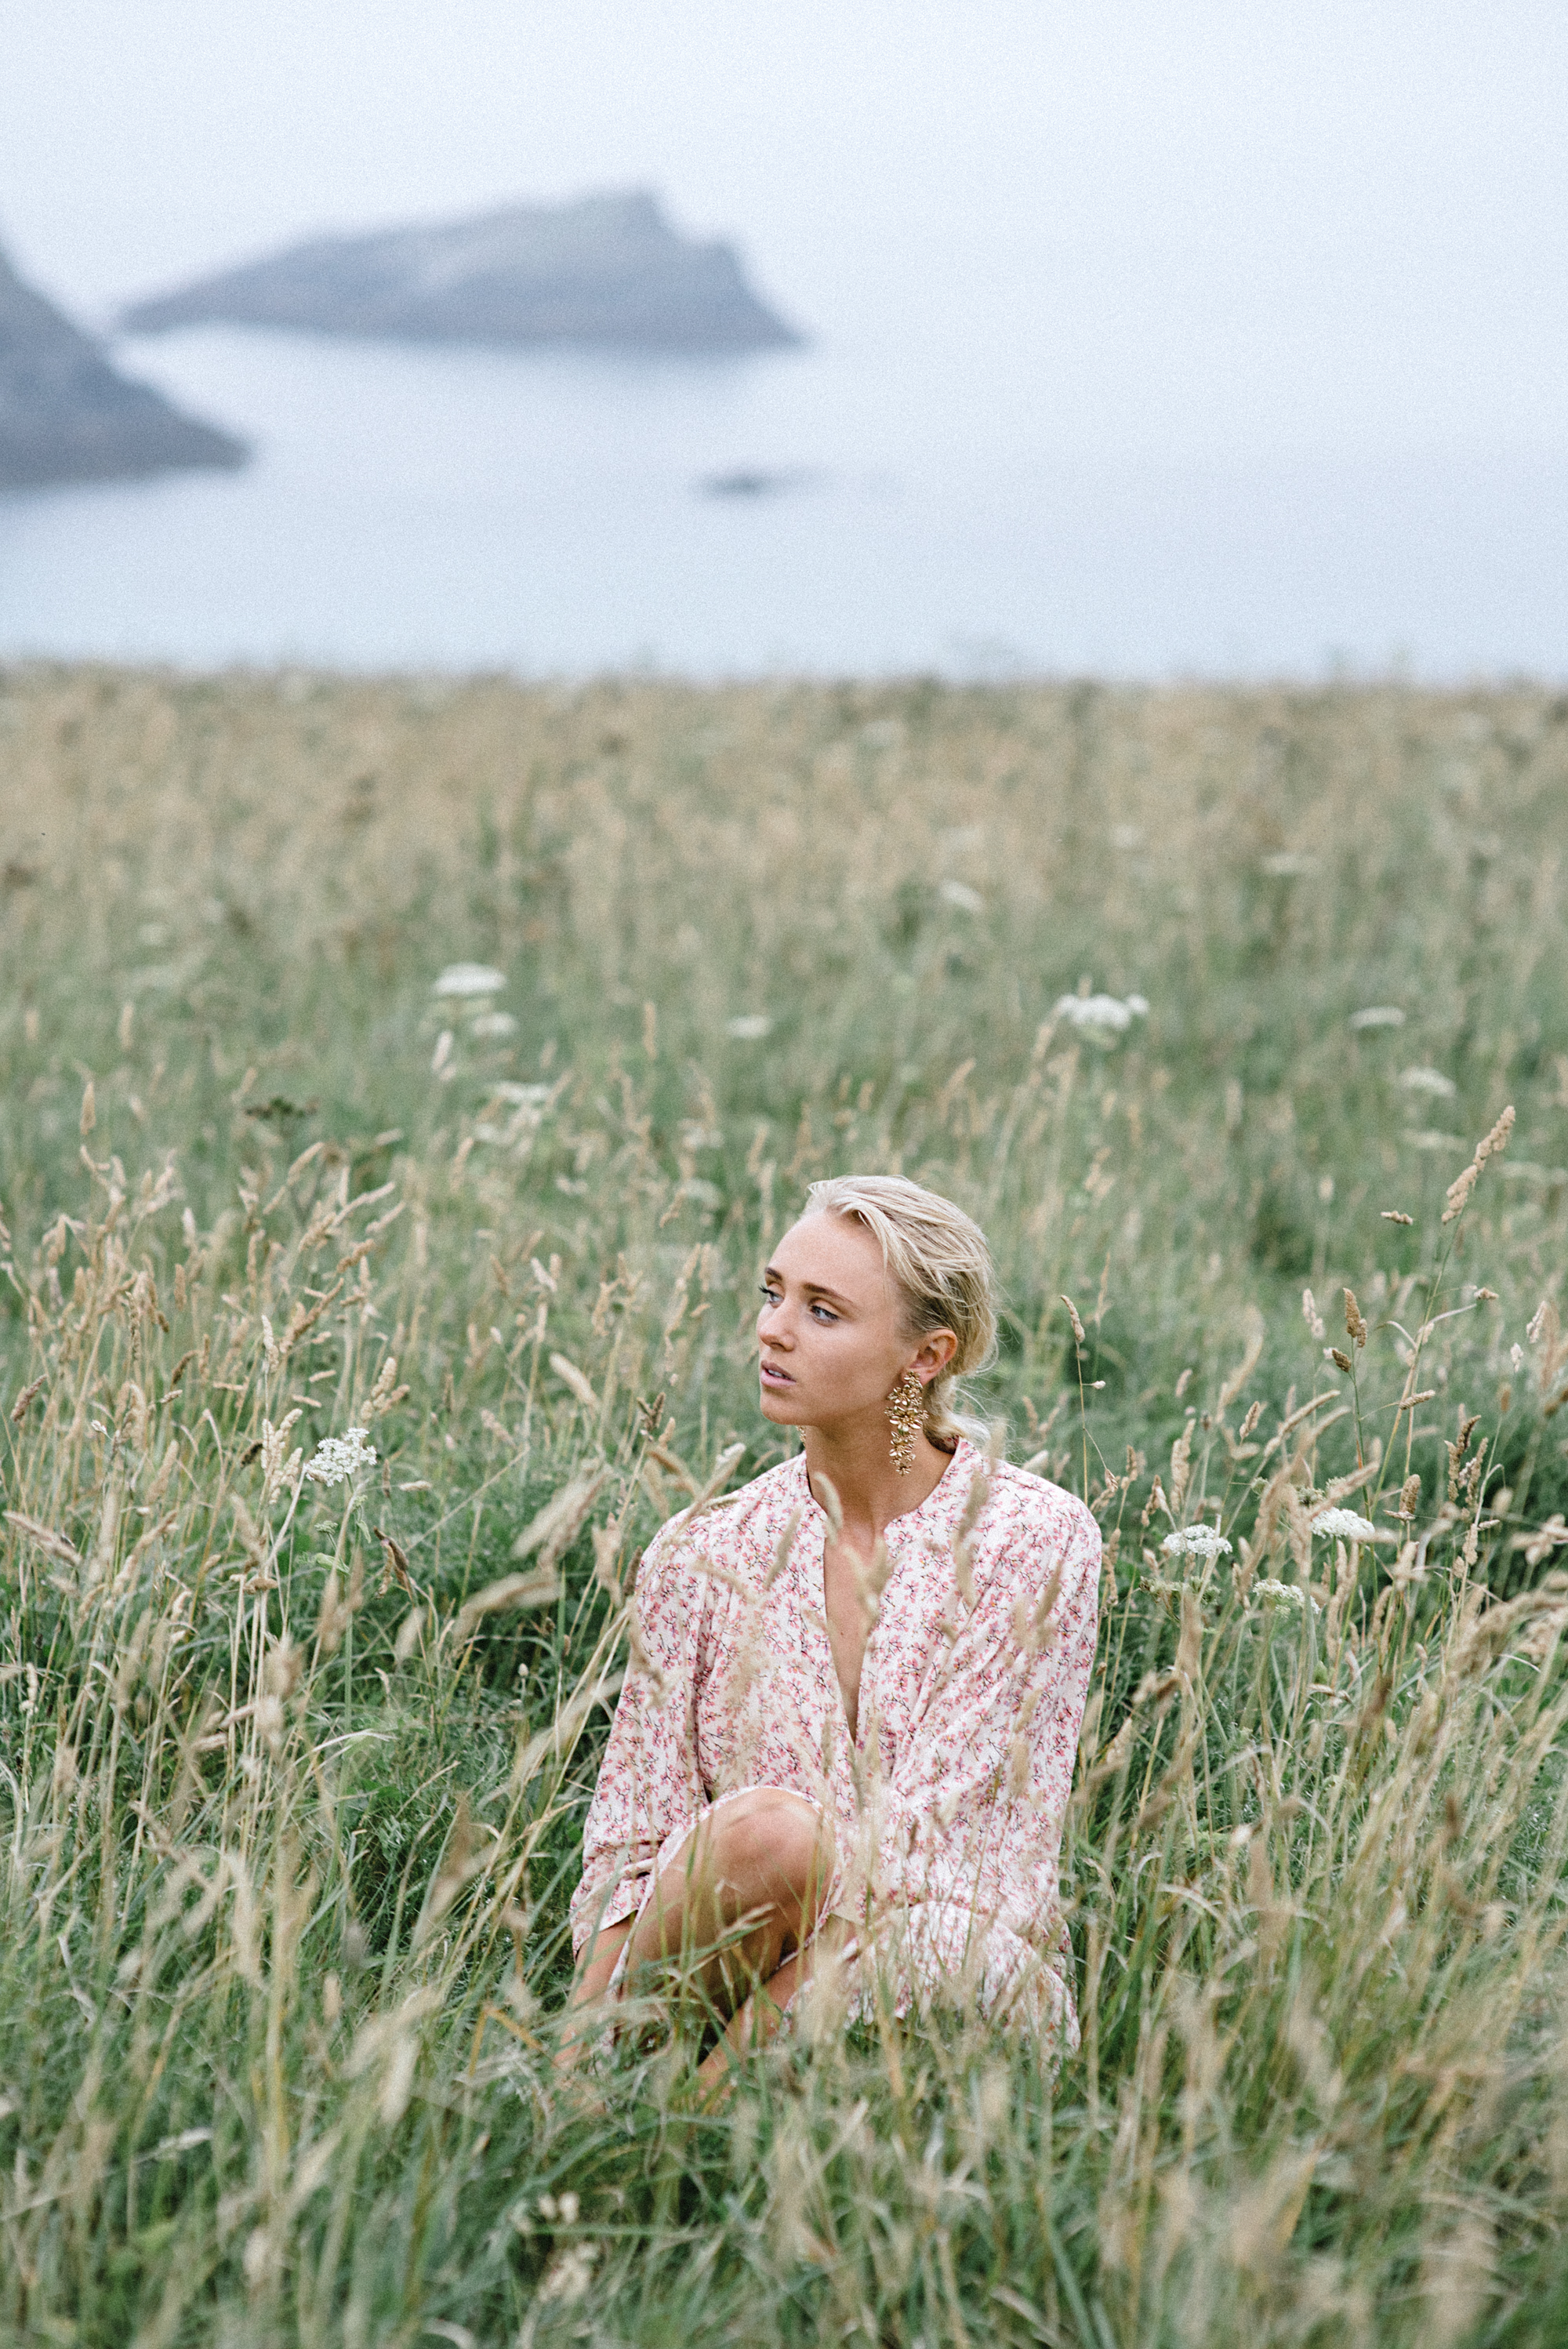 Photography by Olivia Bossert // Based in London, UK and Cornwall // www.oliviabossert.com